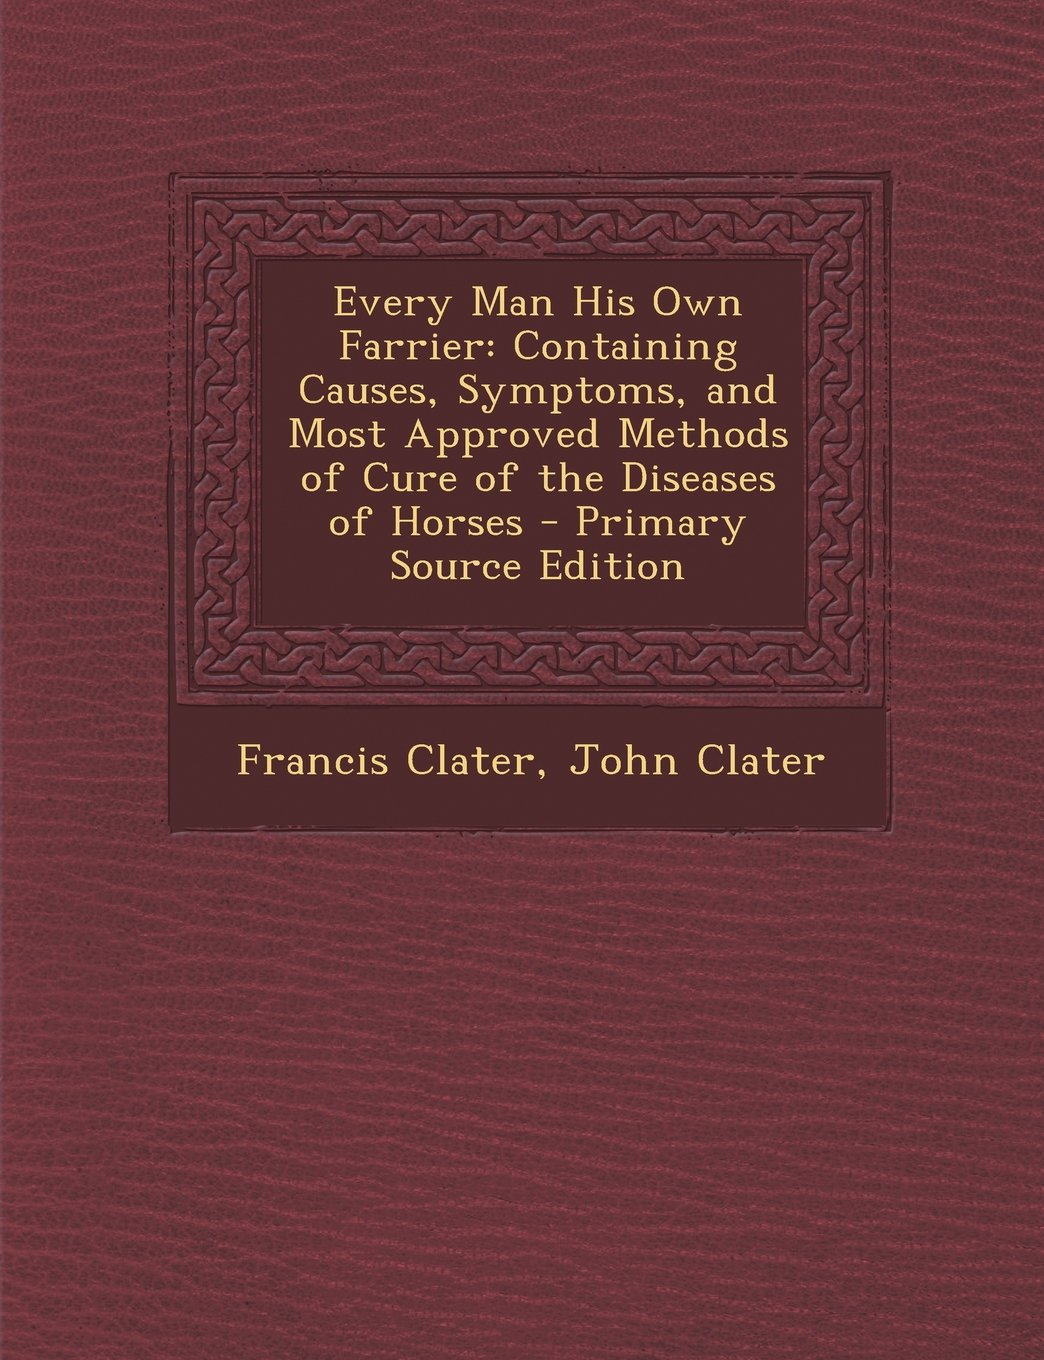 Download Every Man His Own Farrier: Containing Causes, Symptoms, and Most Approved Methods of Cure of the Diseases of Horses - Primary Source Edition pdf